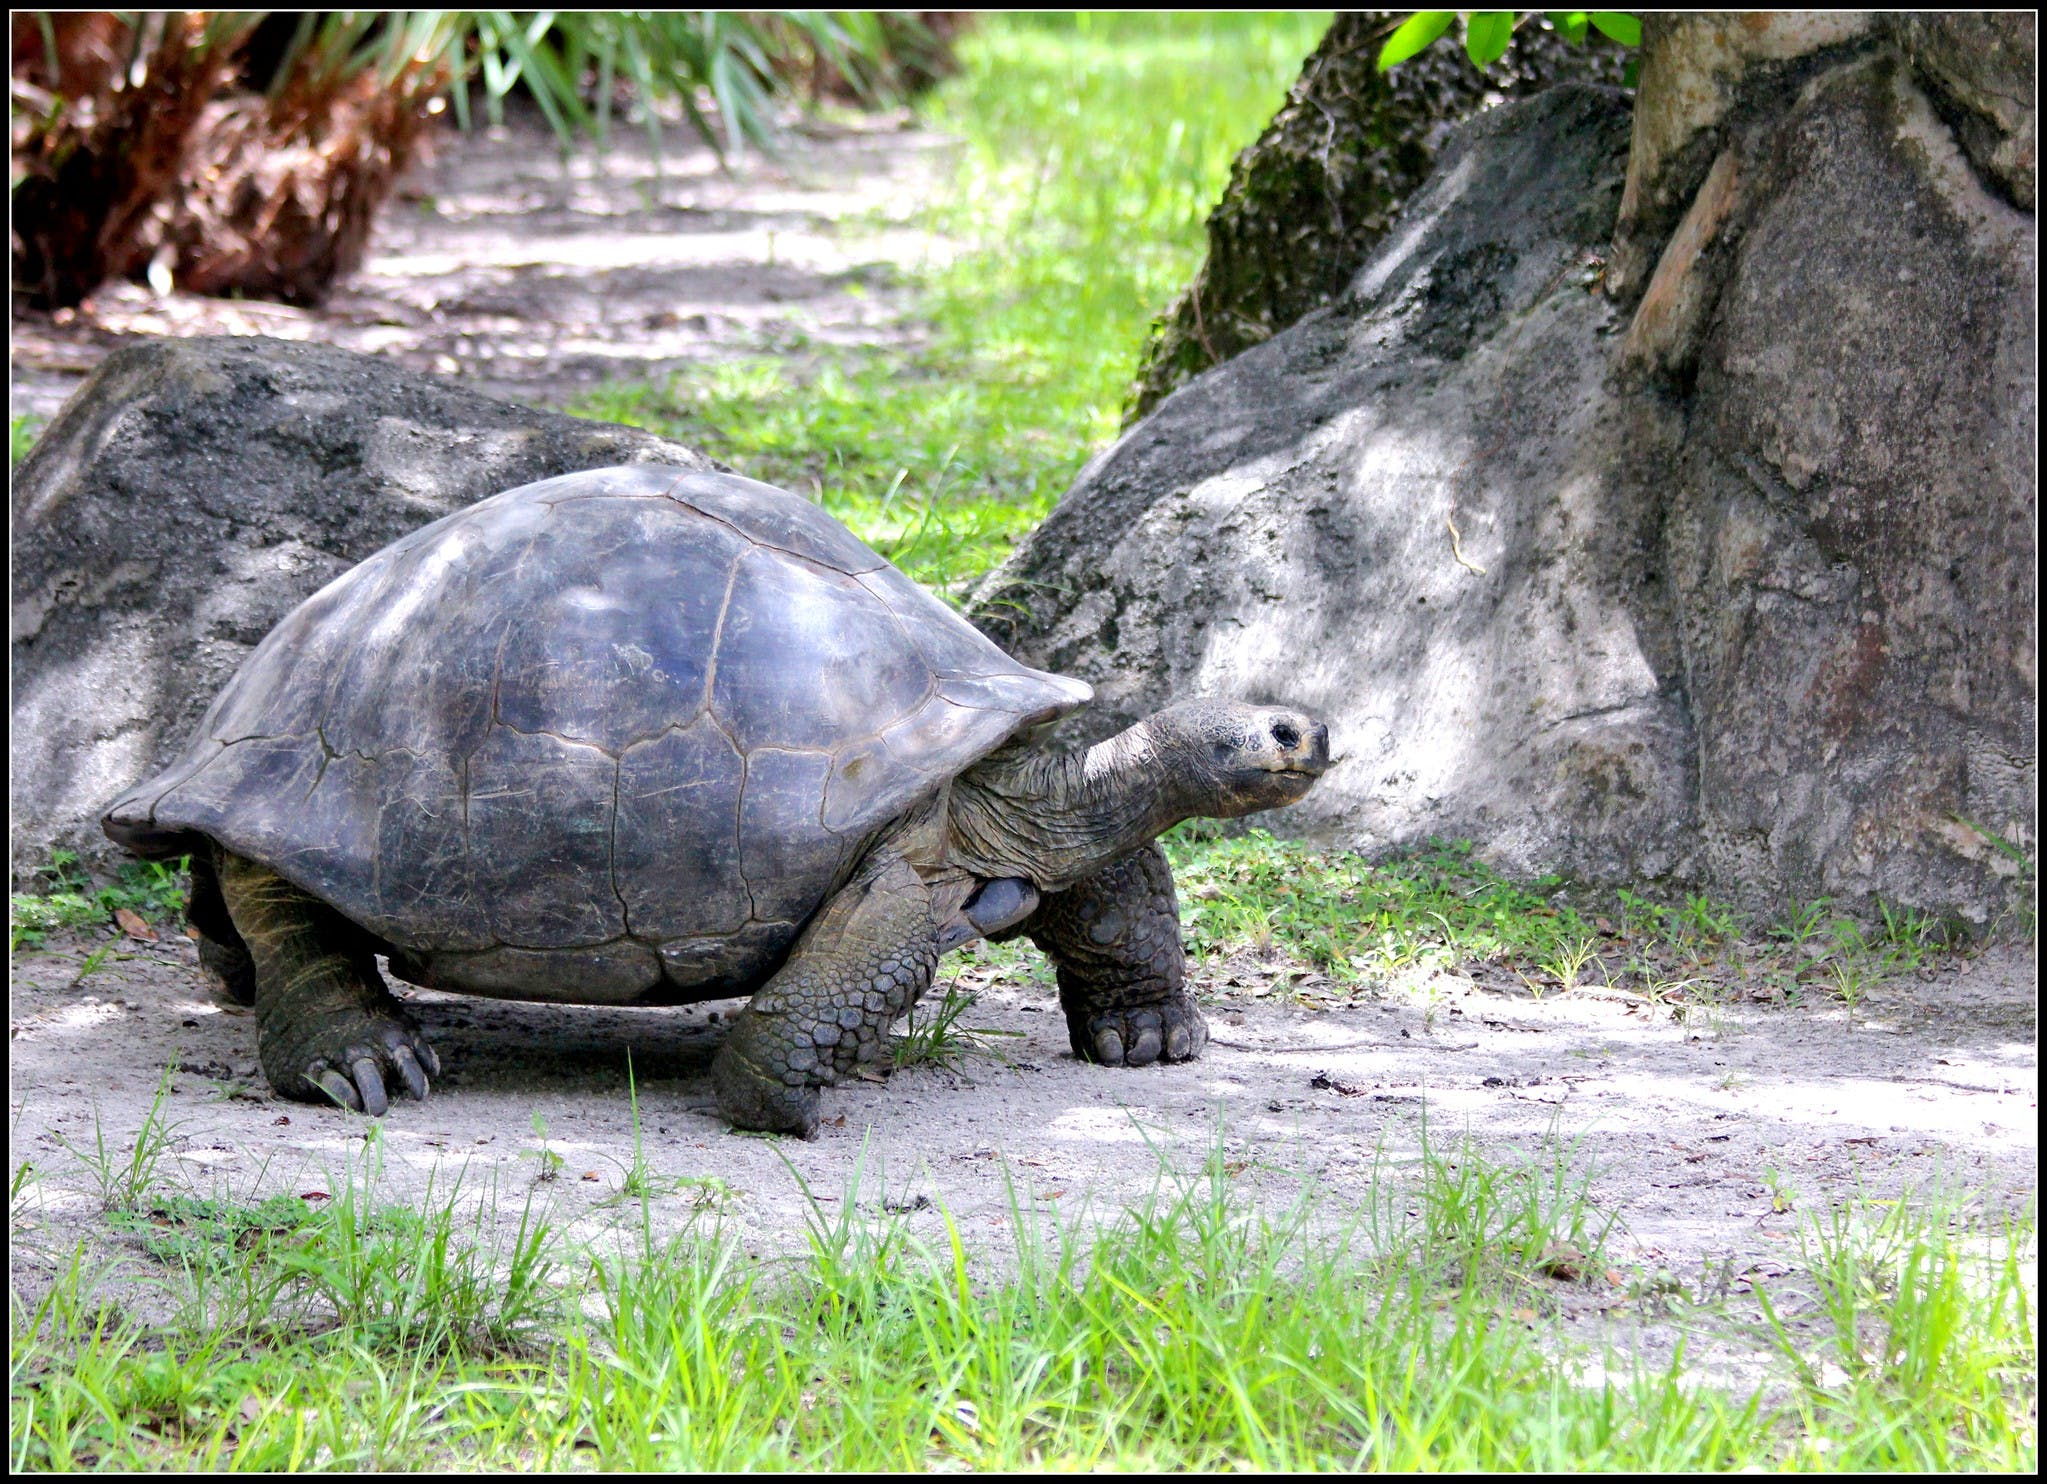 a very large tortoise walking on the ground under a tree